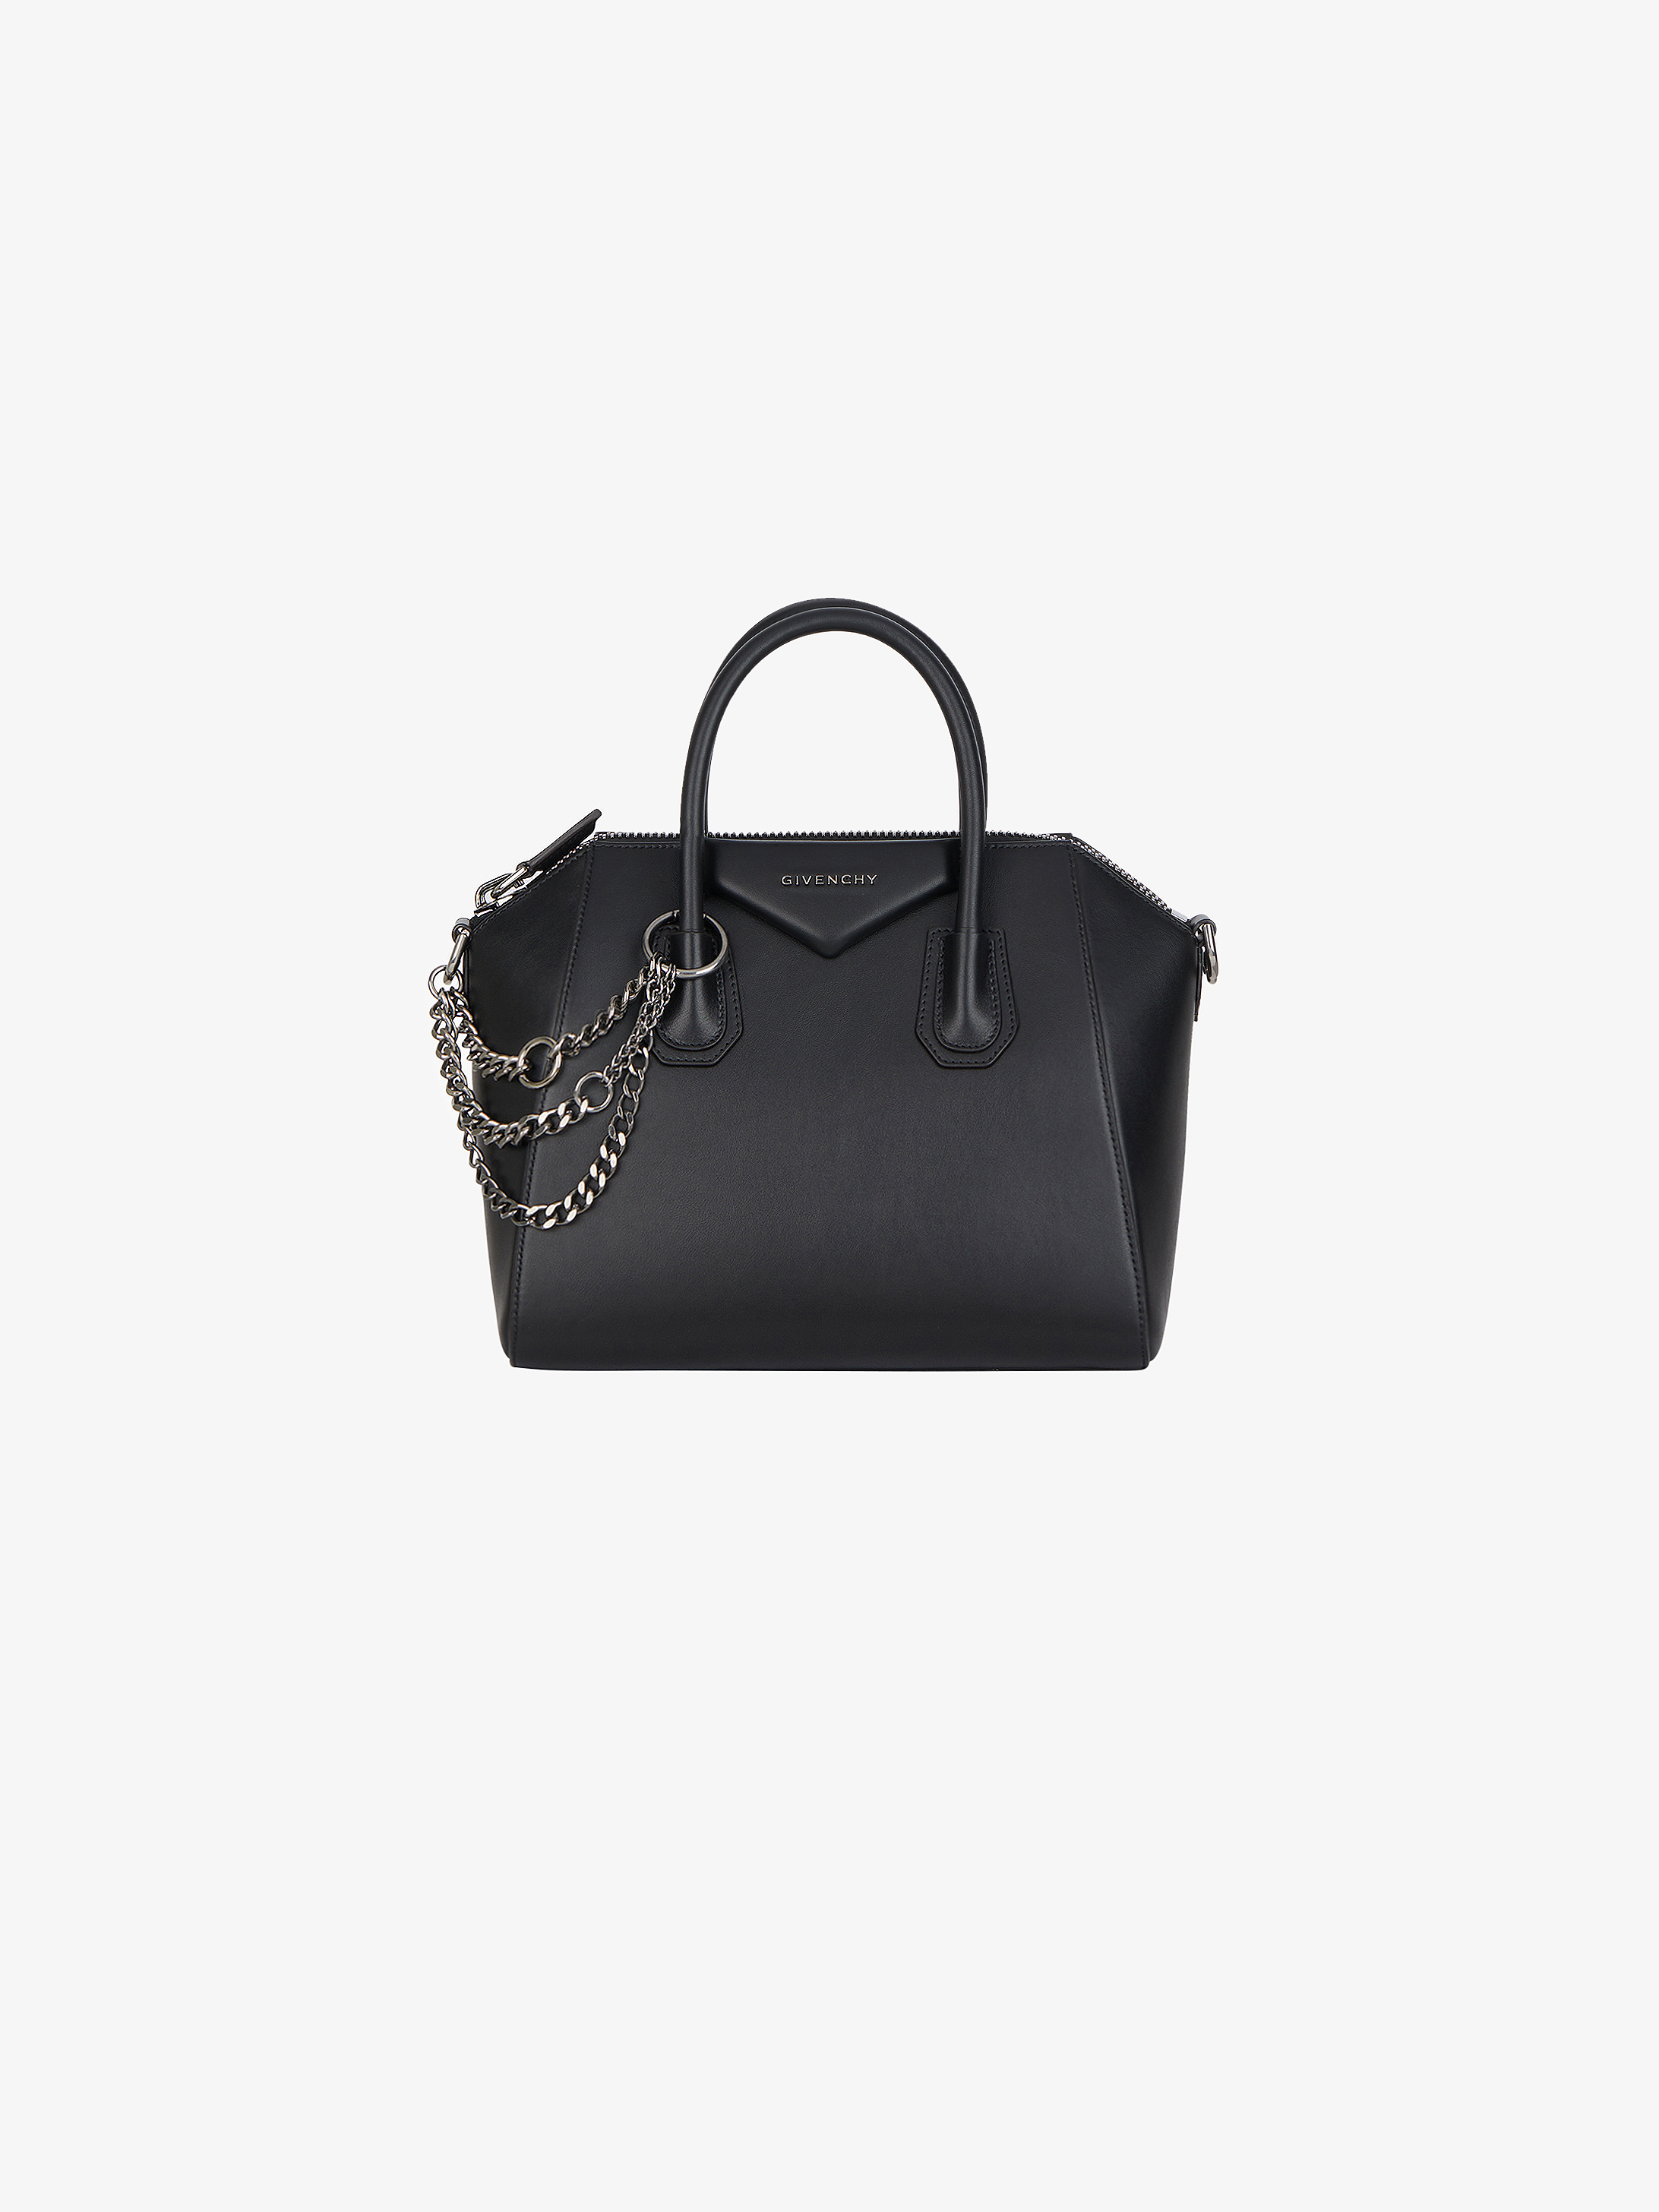 Small Antigona bag in leather with chains